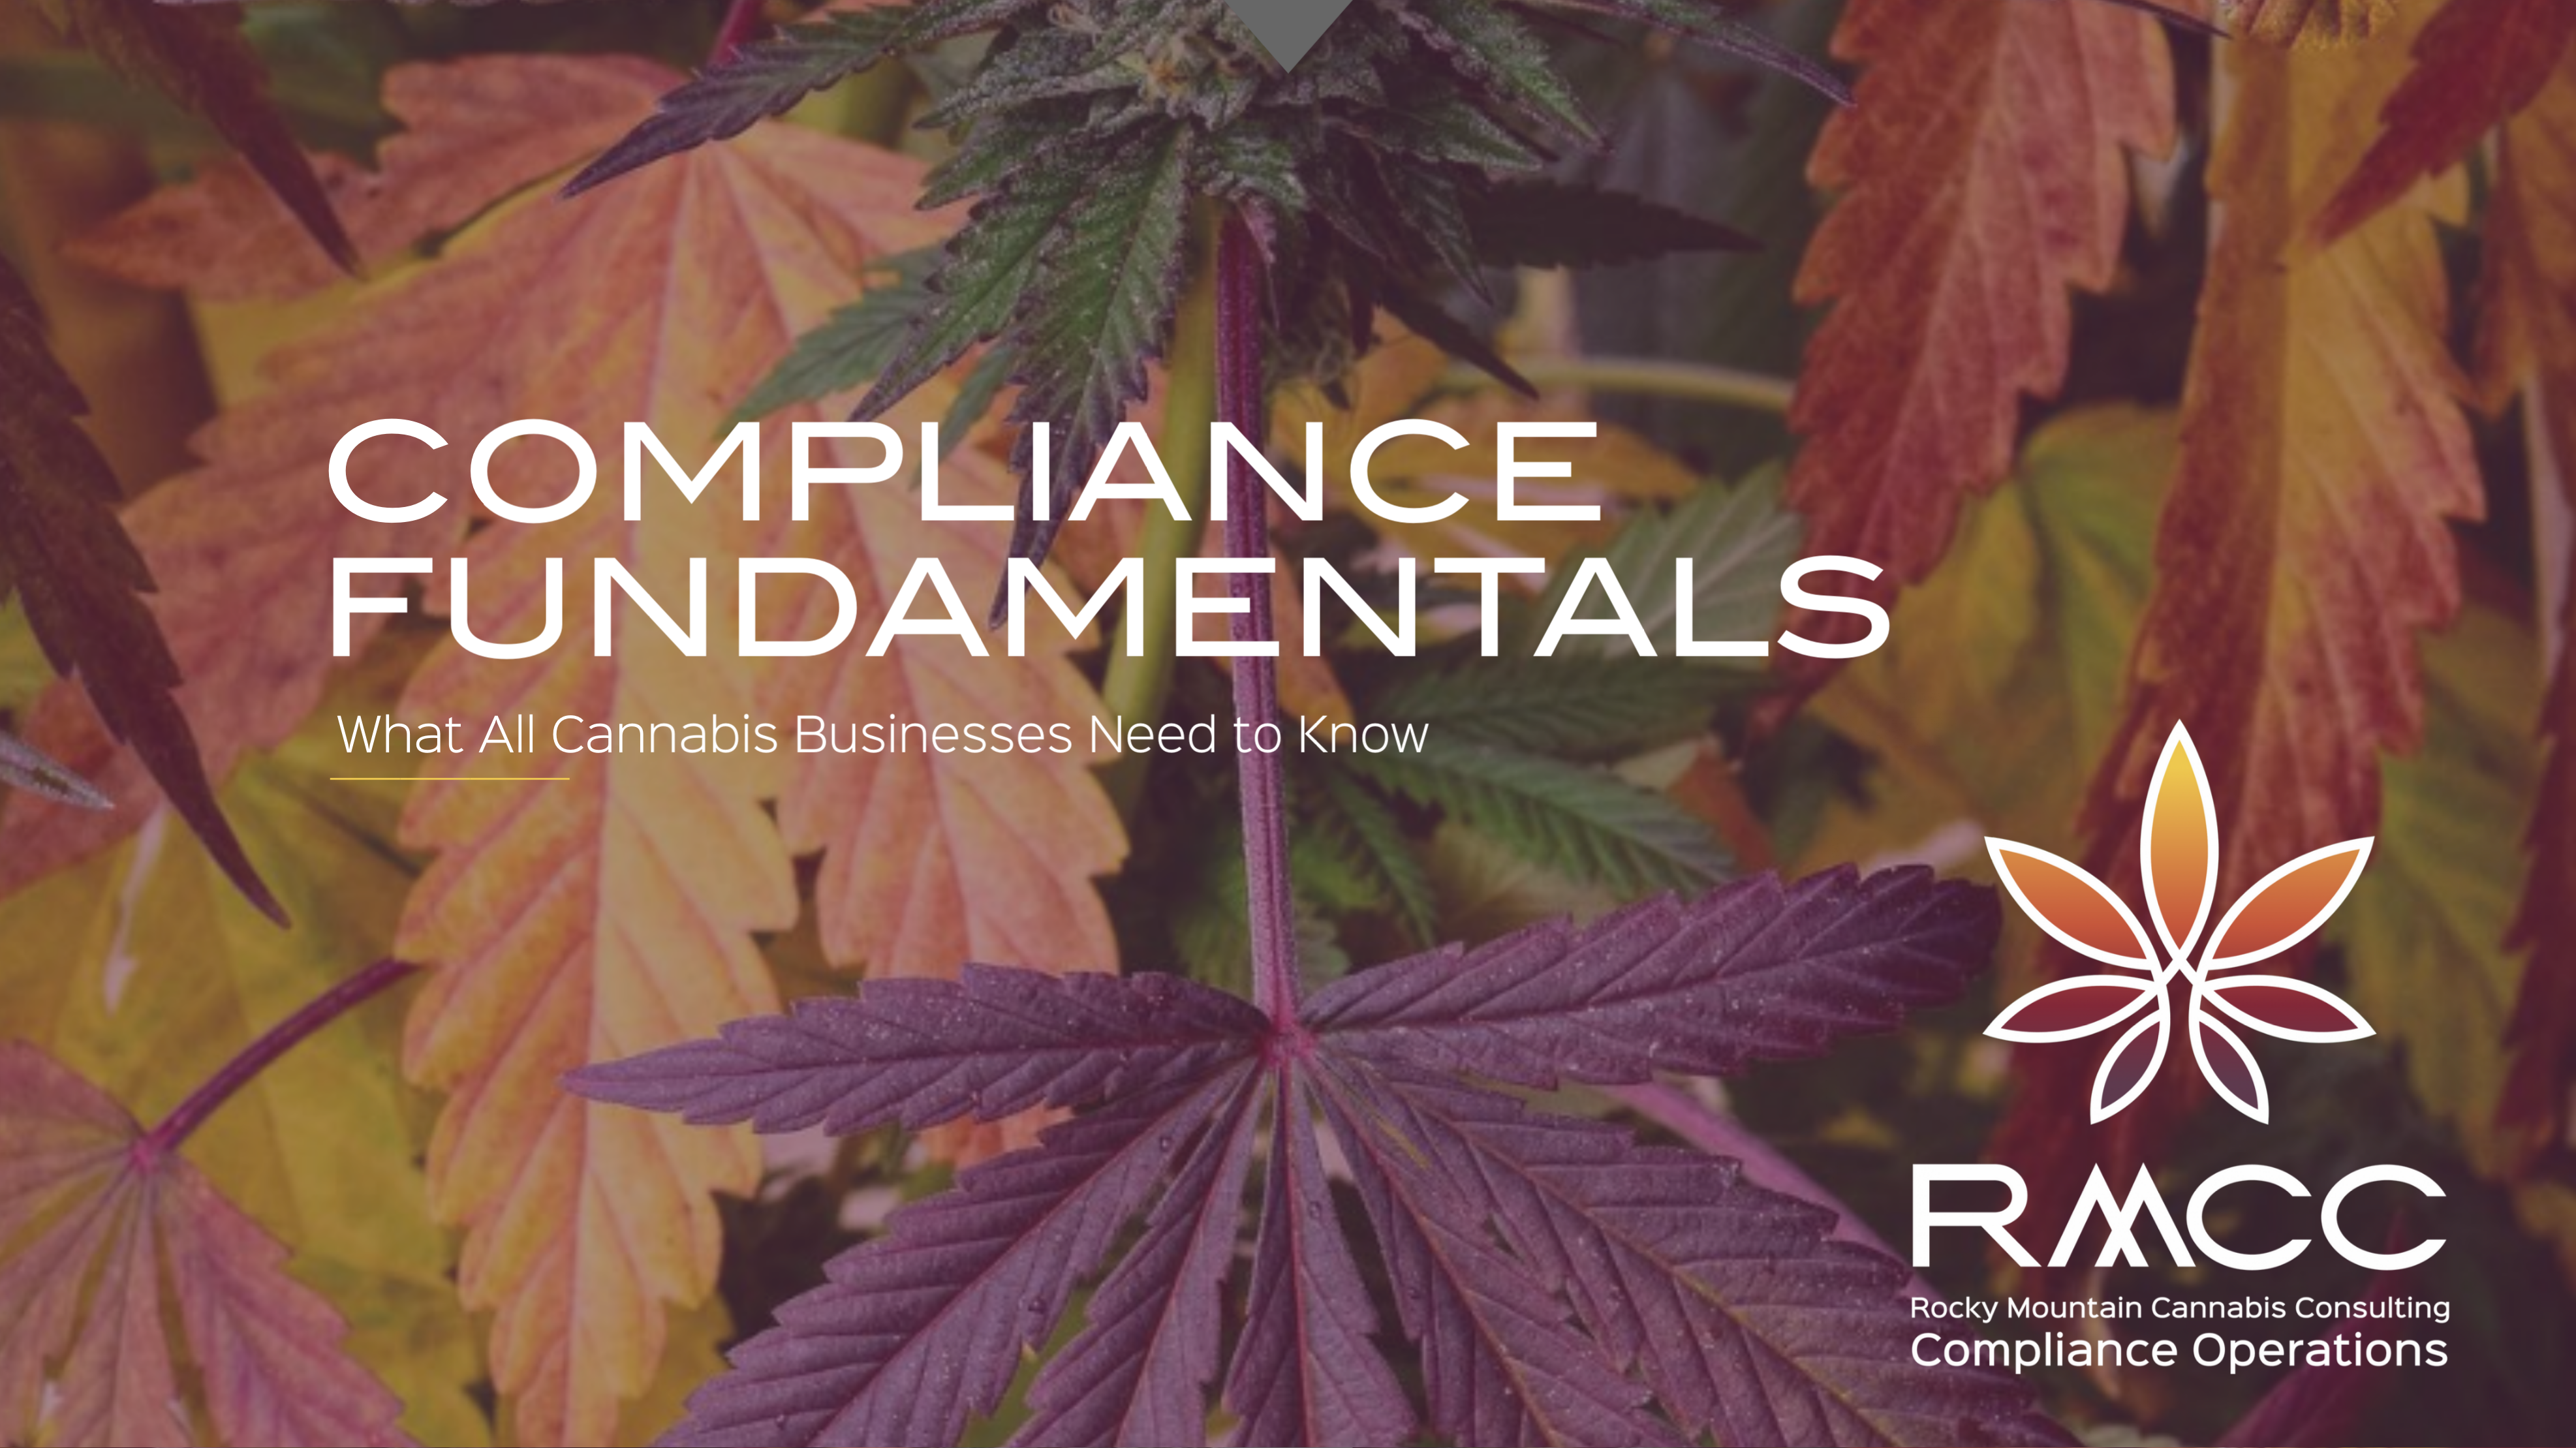 COMPLIANCE FUNDAMENTALS WHAT ALL CANNABIS BUSINESSES NEED TO KNOW